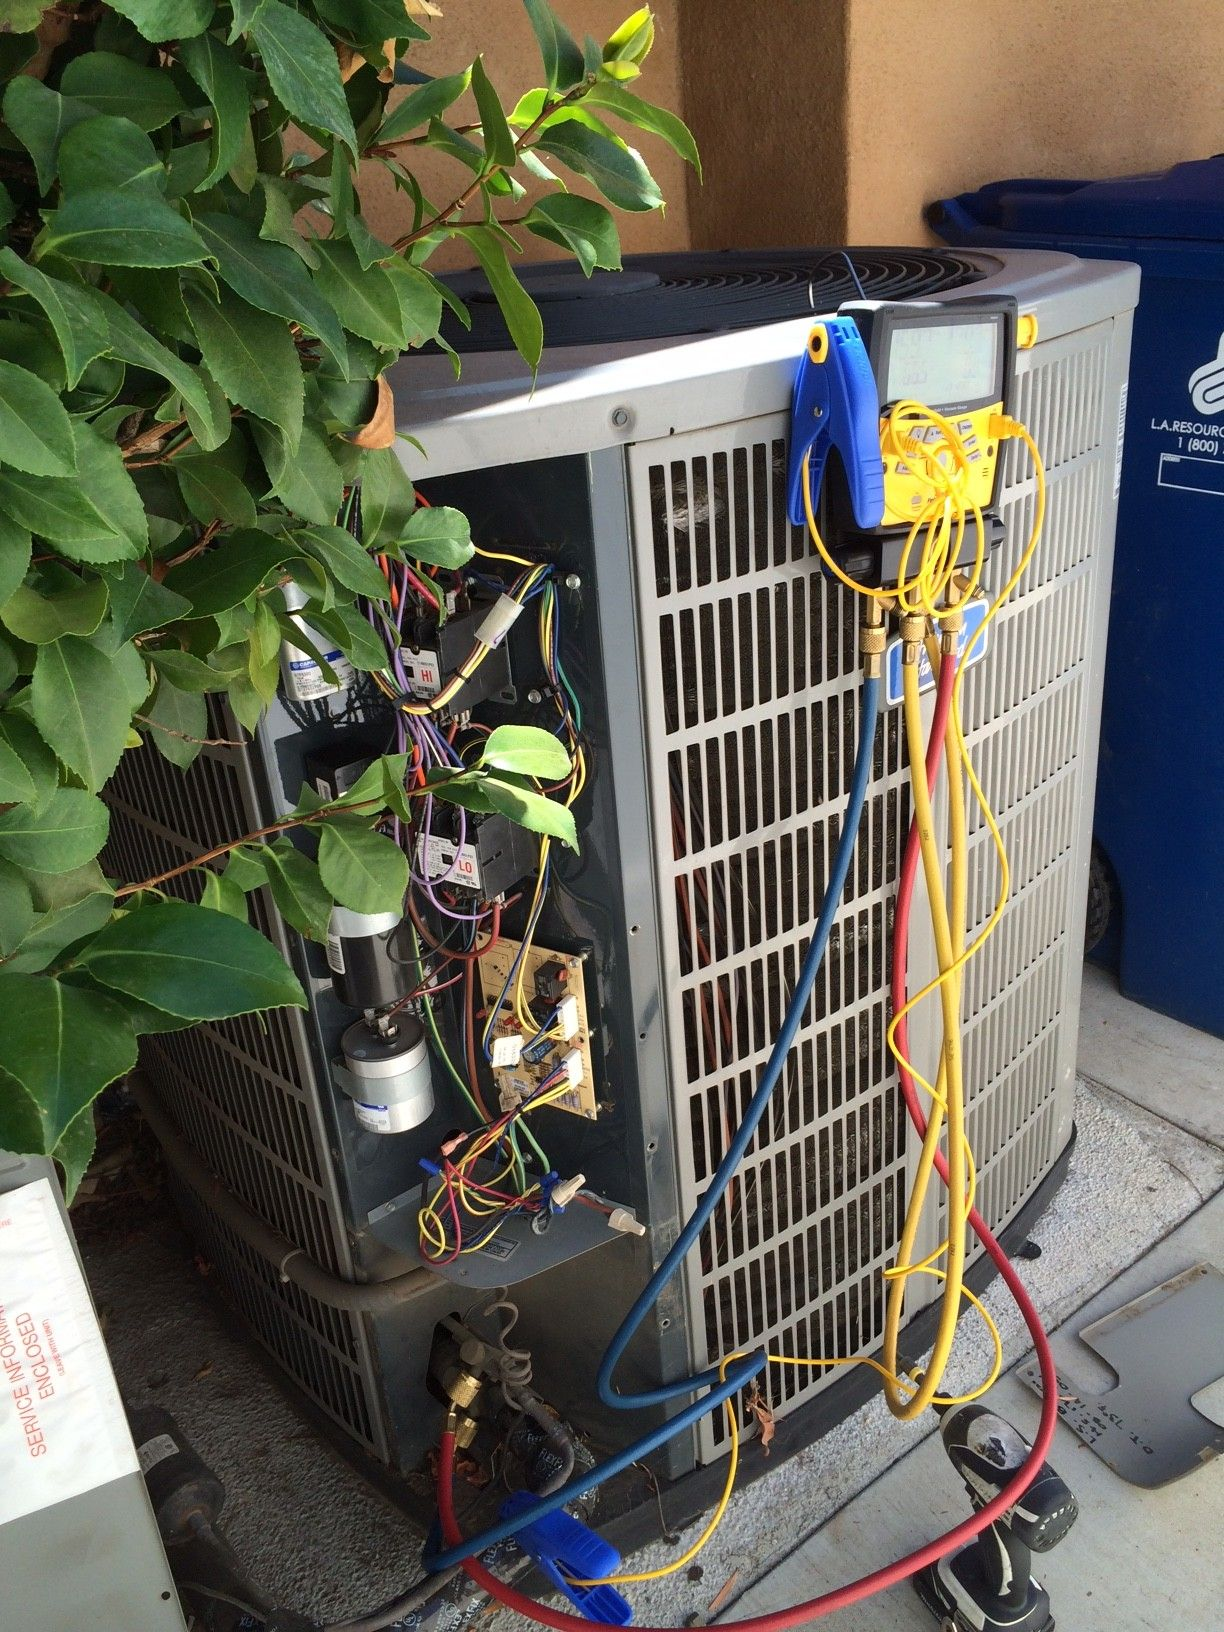 Air Conditioning System Not Cooling Properly? There are